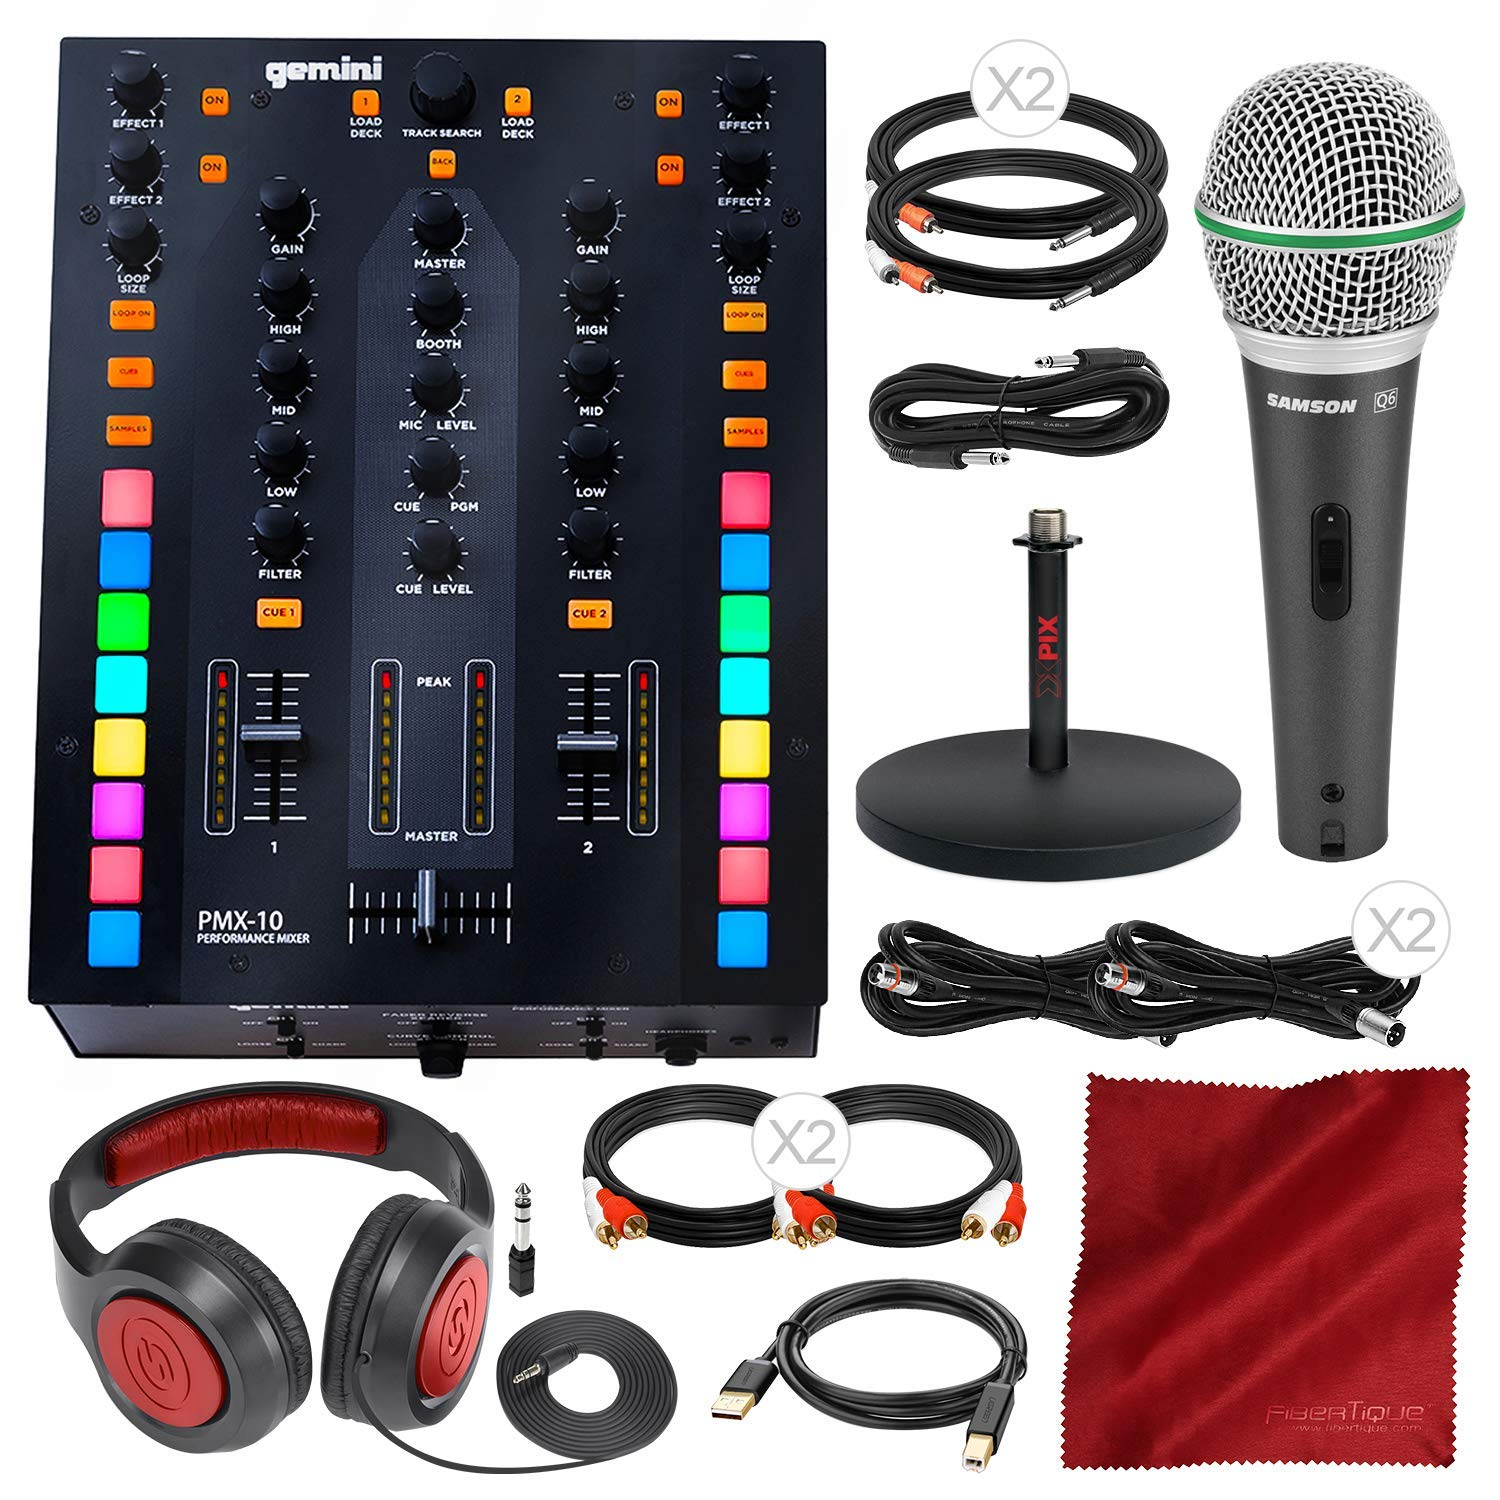 Gemini PMX-10 A- A-B/DJ Mixer Box with Microphone, Headphones & Assorted Cables Deluxe Bundle by Gemini - PS